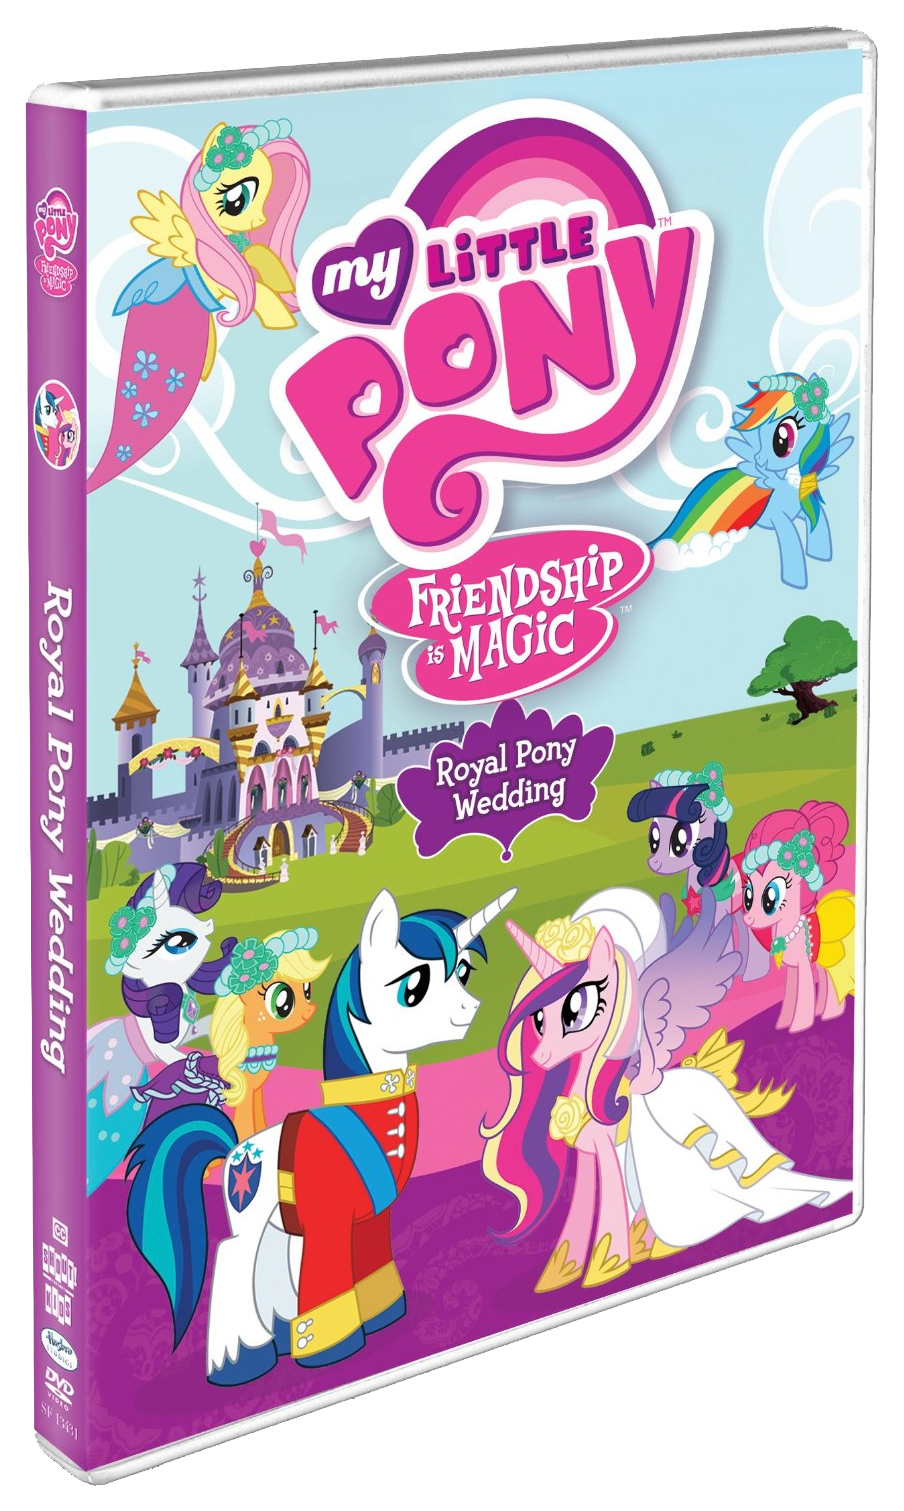 My little pony friendship is magic coloring pages best night ever - My Little Pony Friendship Is Magic Royal Pony Wedding Dvd